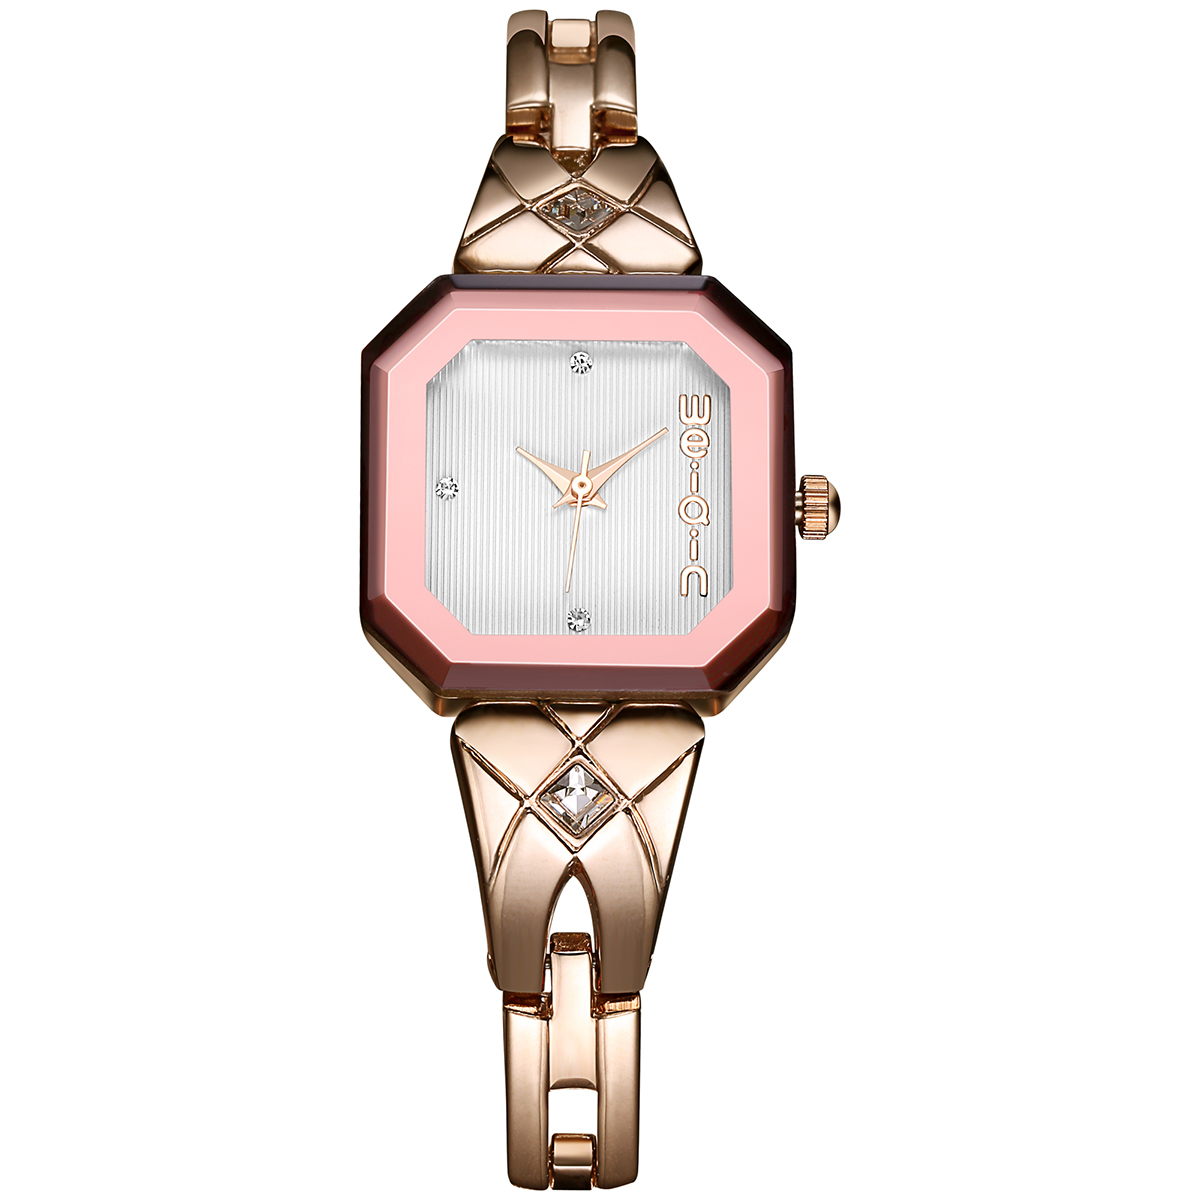 WEIQIN Rectangle Dial Gold Quartz Watches Women Simple Rhinestone Scale Hardlex Wristwatch Bracelet Strap Fashion Ladies Watch weiqin new rose gold watches women resin band shell dial analog quartz wirstwatch hardlex rhinestone display luxury watch